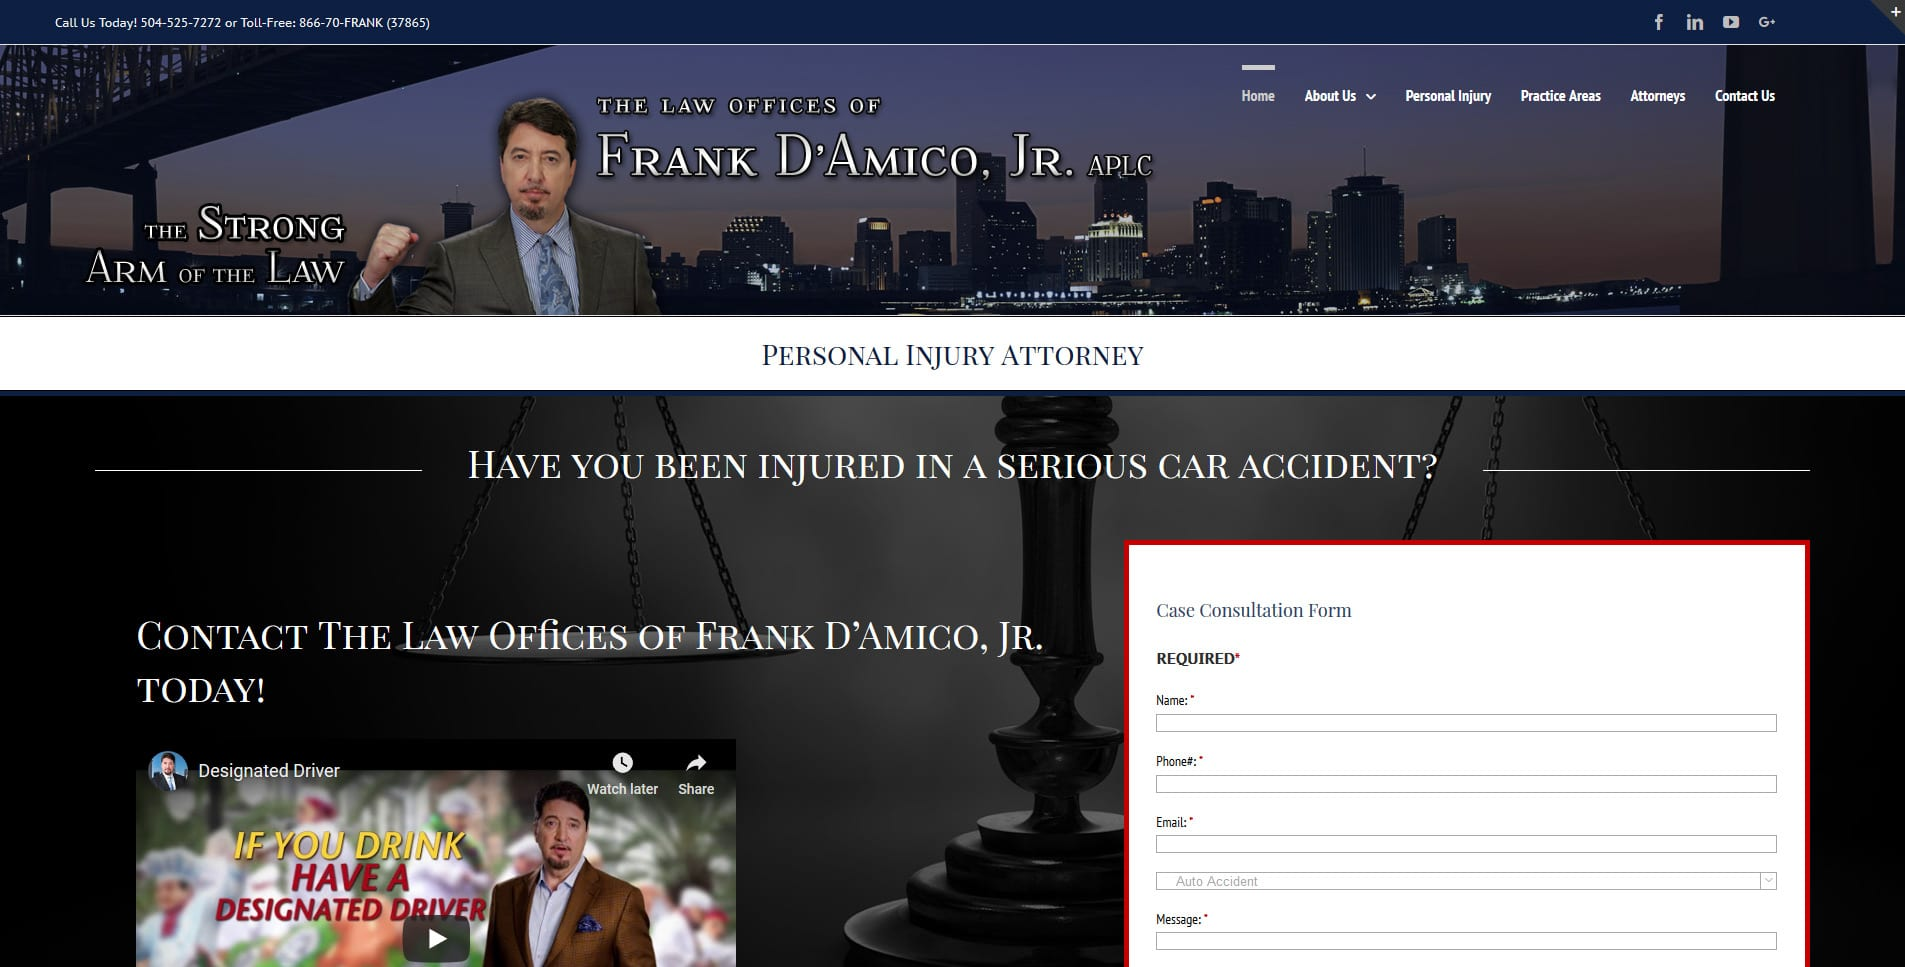 Law offices of Frank d'Amico, jr